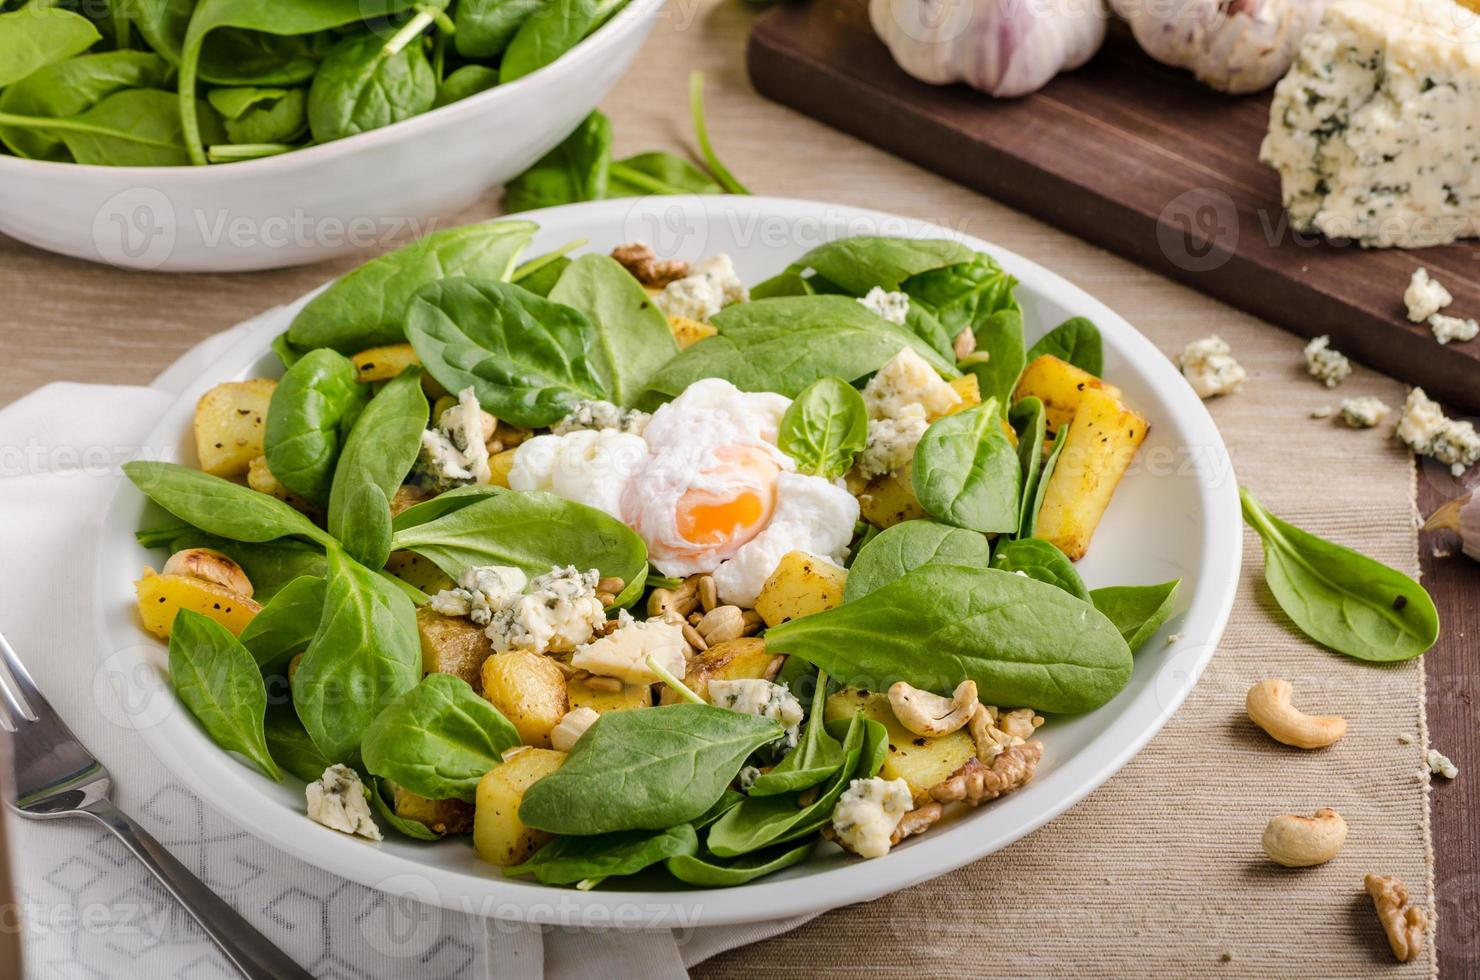 Spinach salad with egg benedict photo